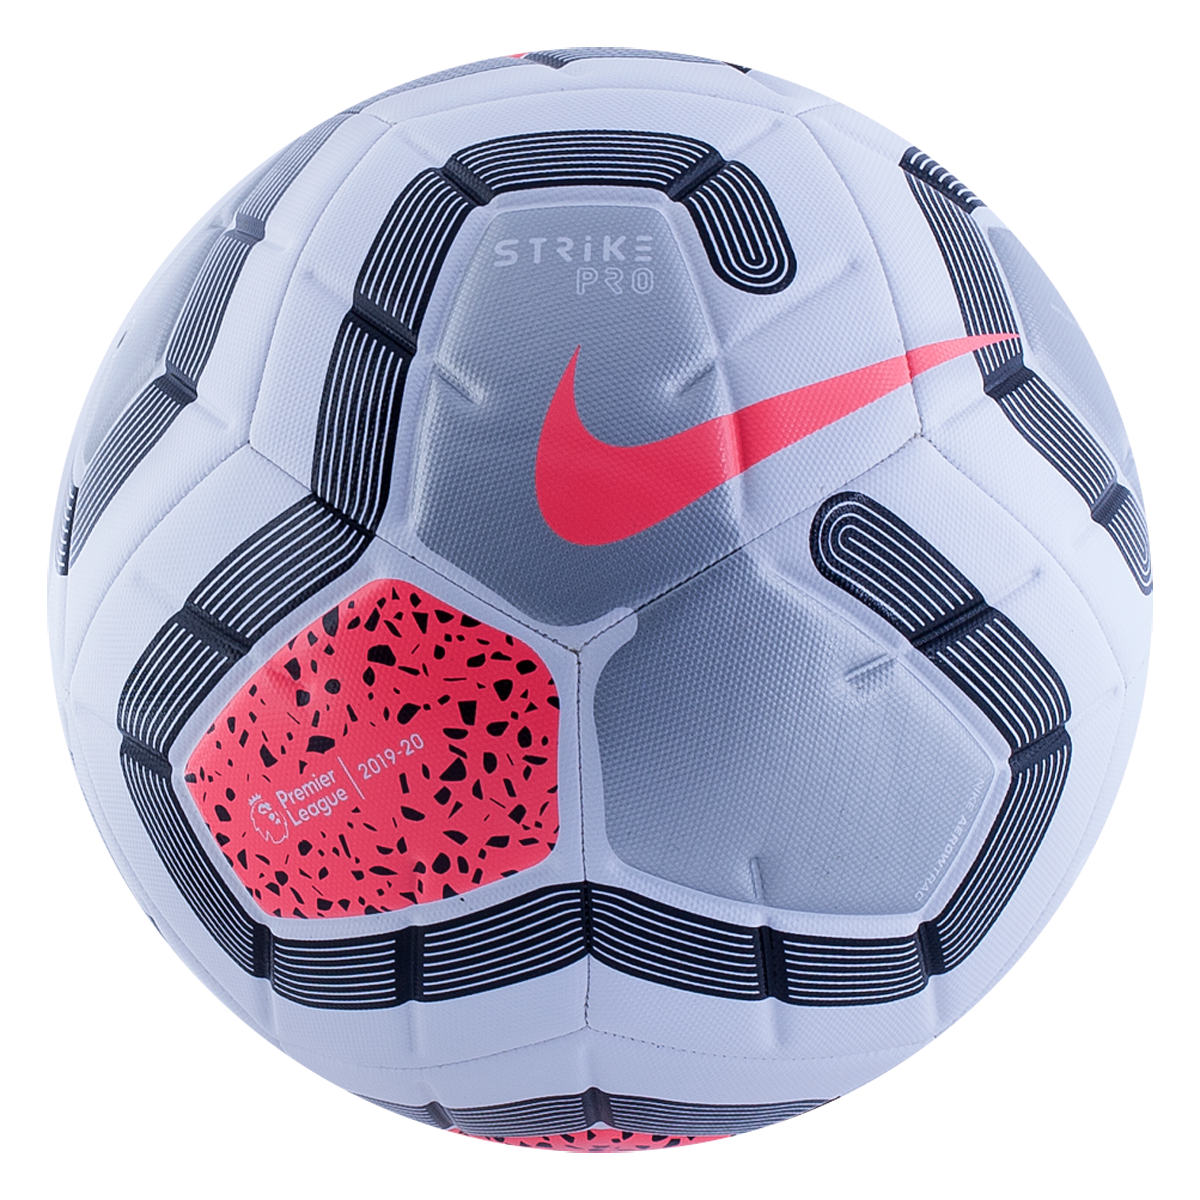 Nike Premier League Strike Pro Soccer Ball 19 20 White Pink 5 Soccer Ball Soccer Premier League